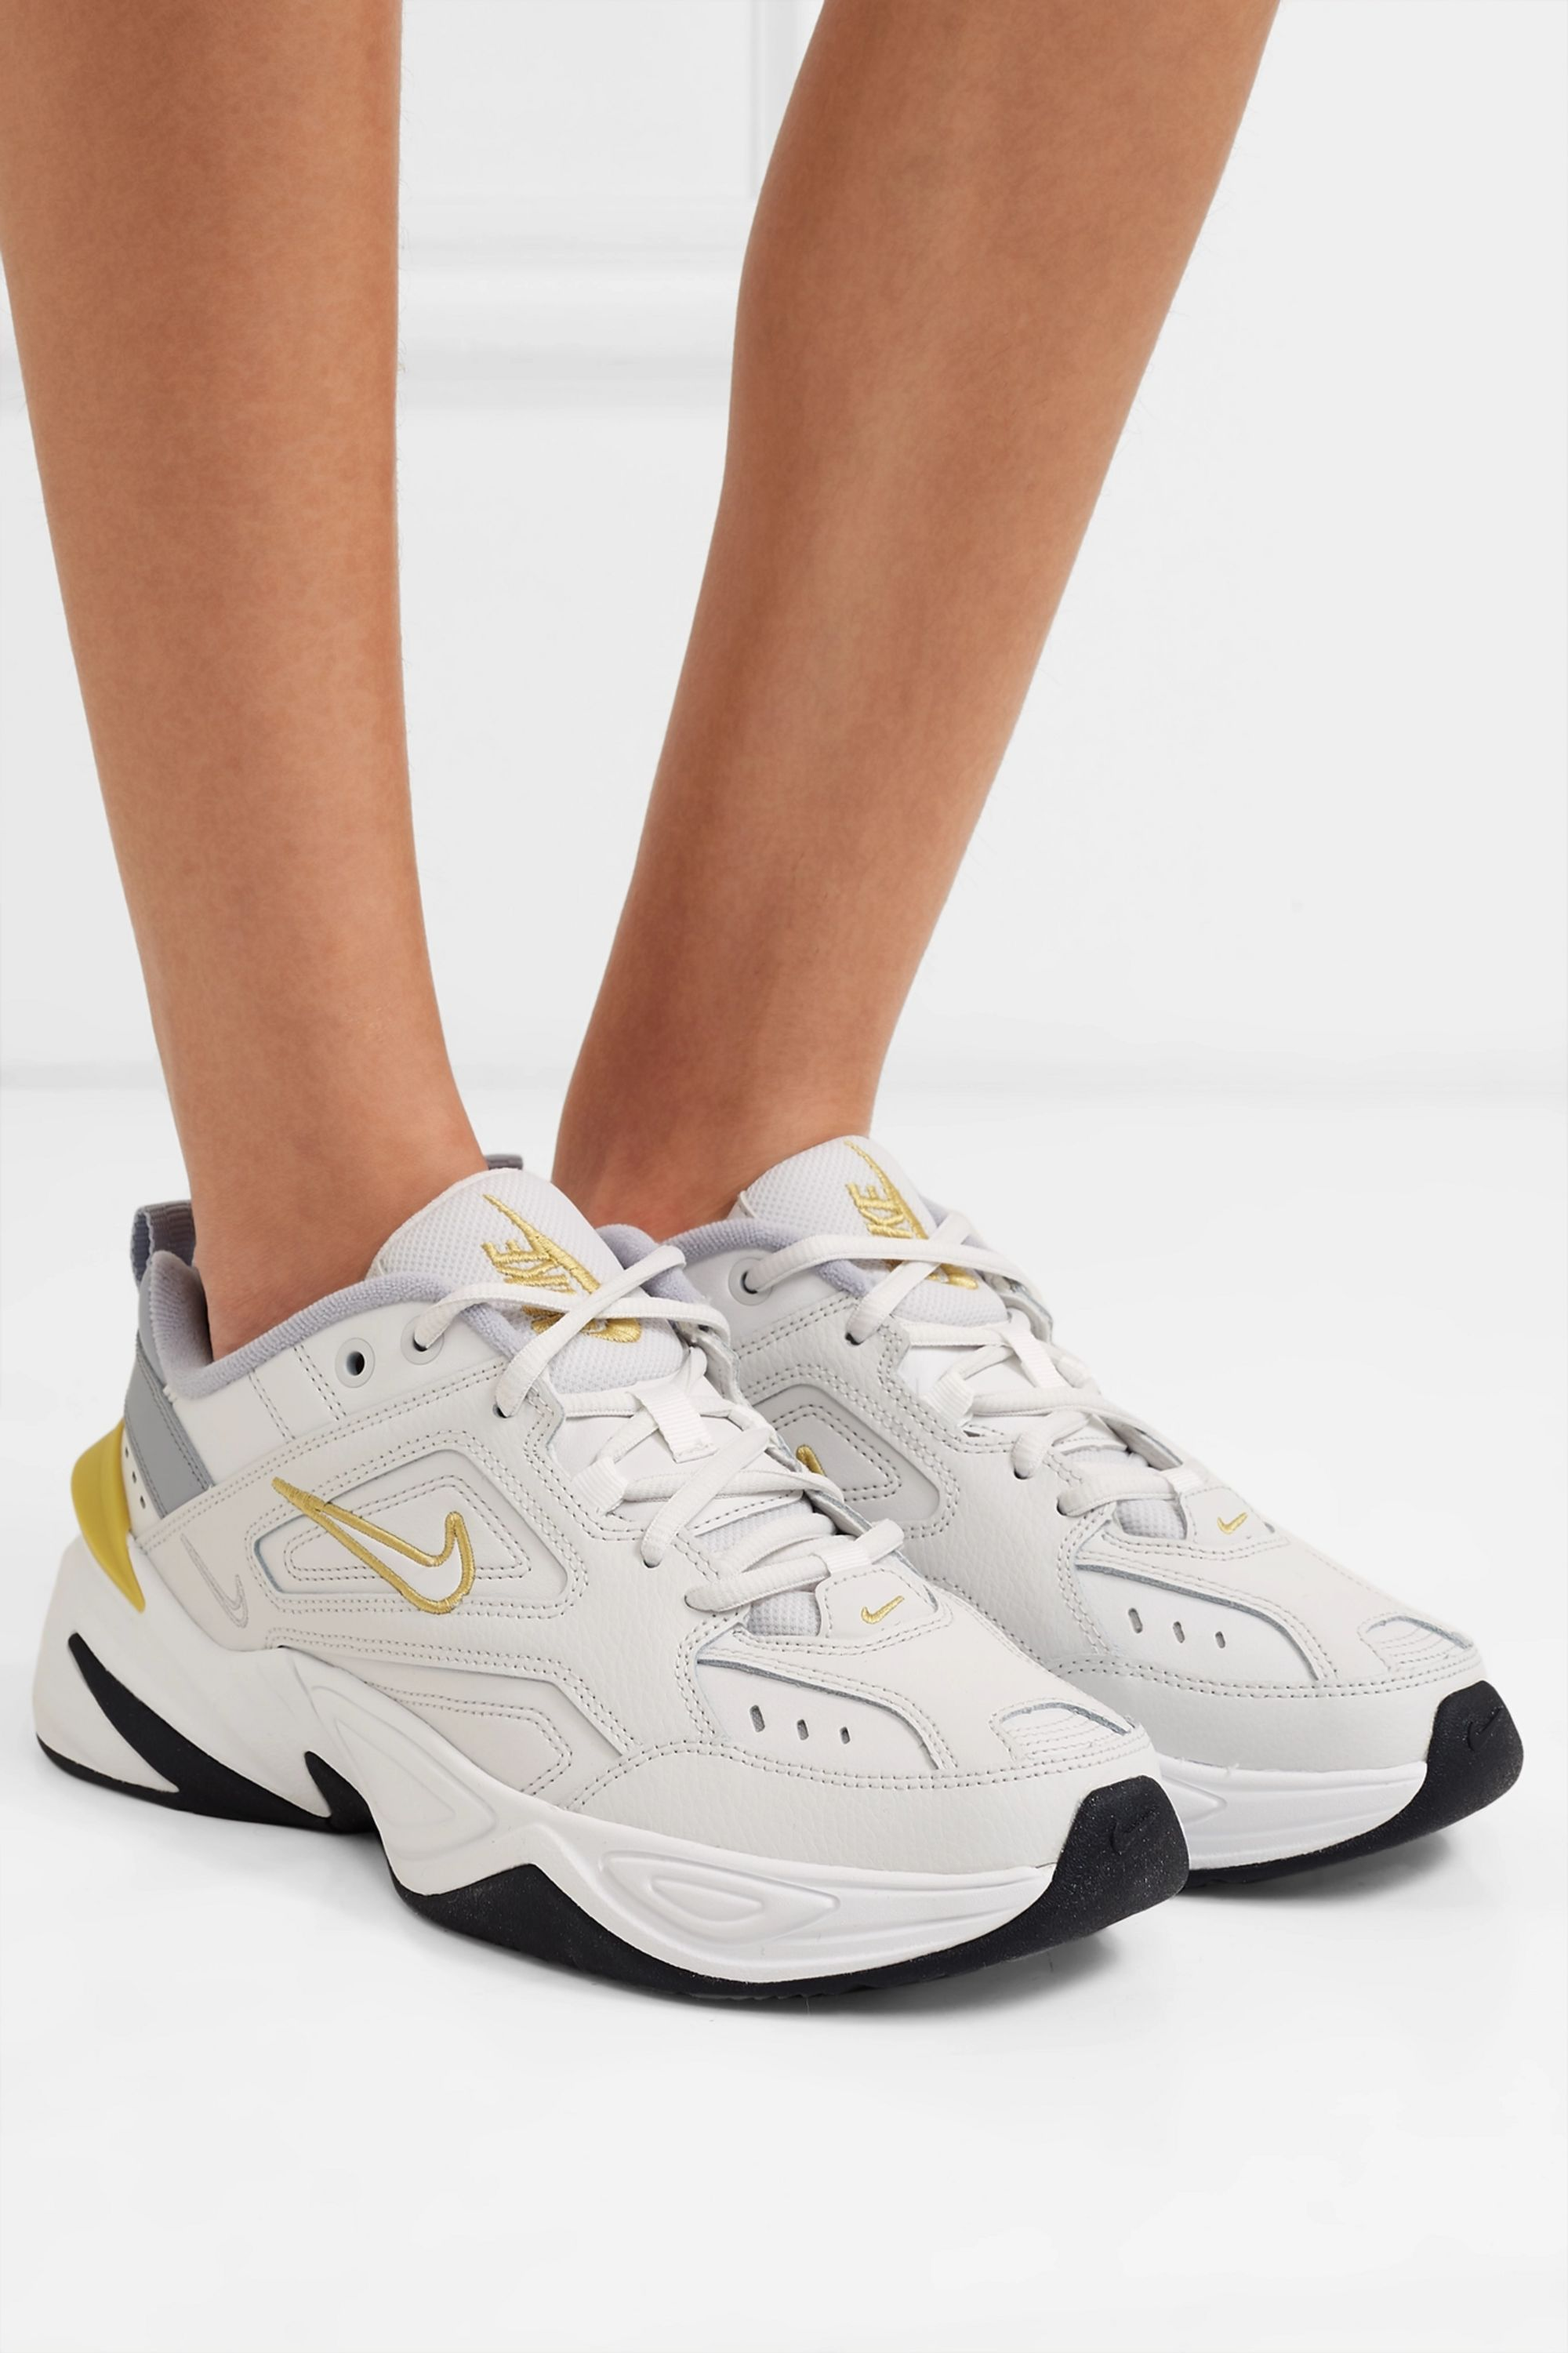 Light gray M2K Tekno leather and mesh